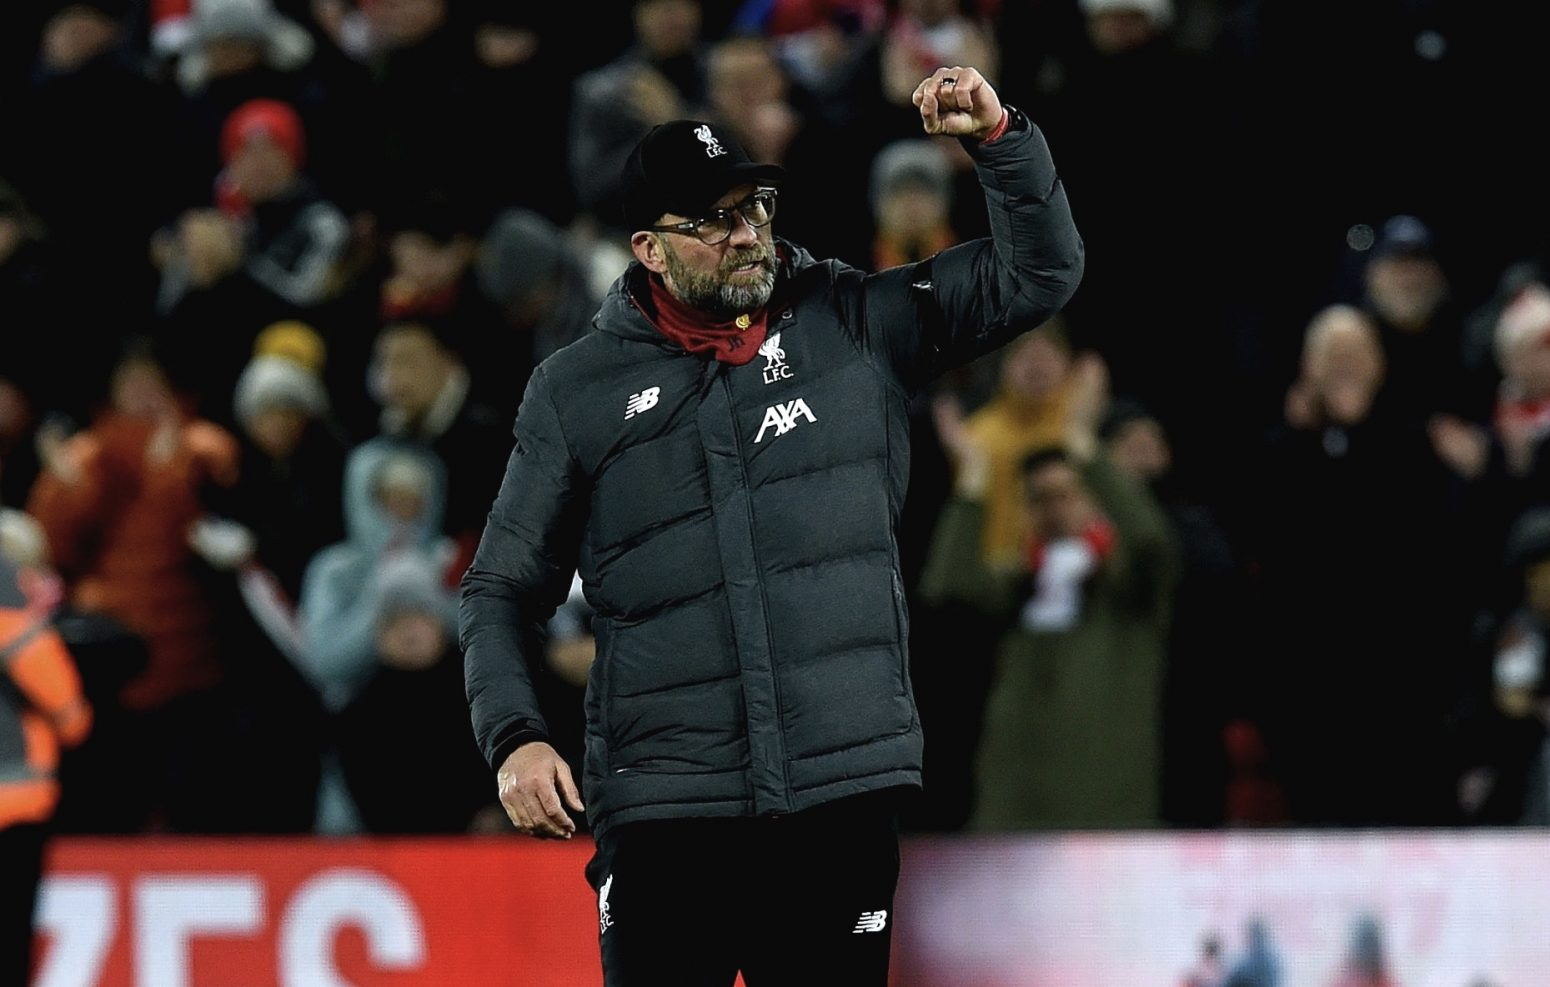 Jurgen Klopp: We know our run is special – but we're in no mood to rest yet